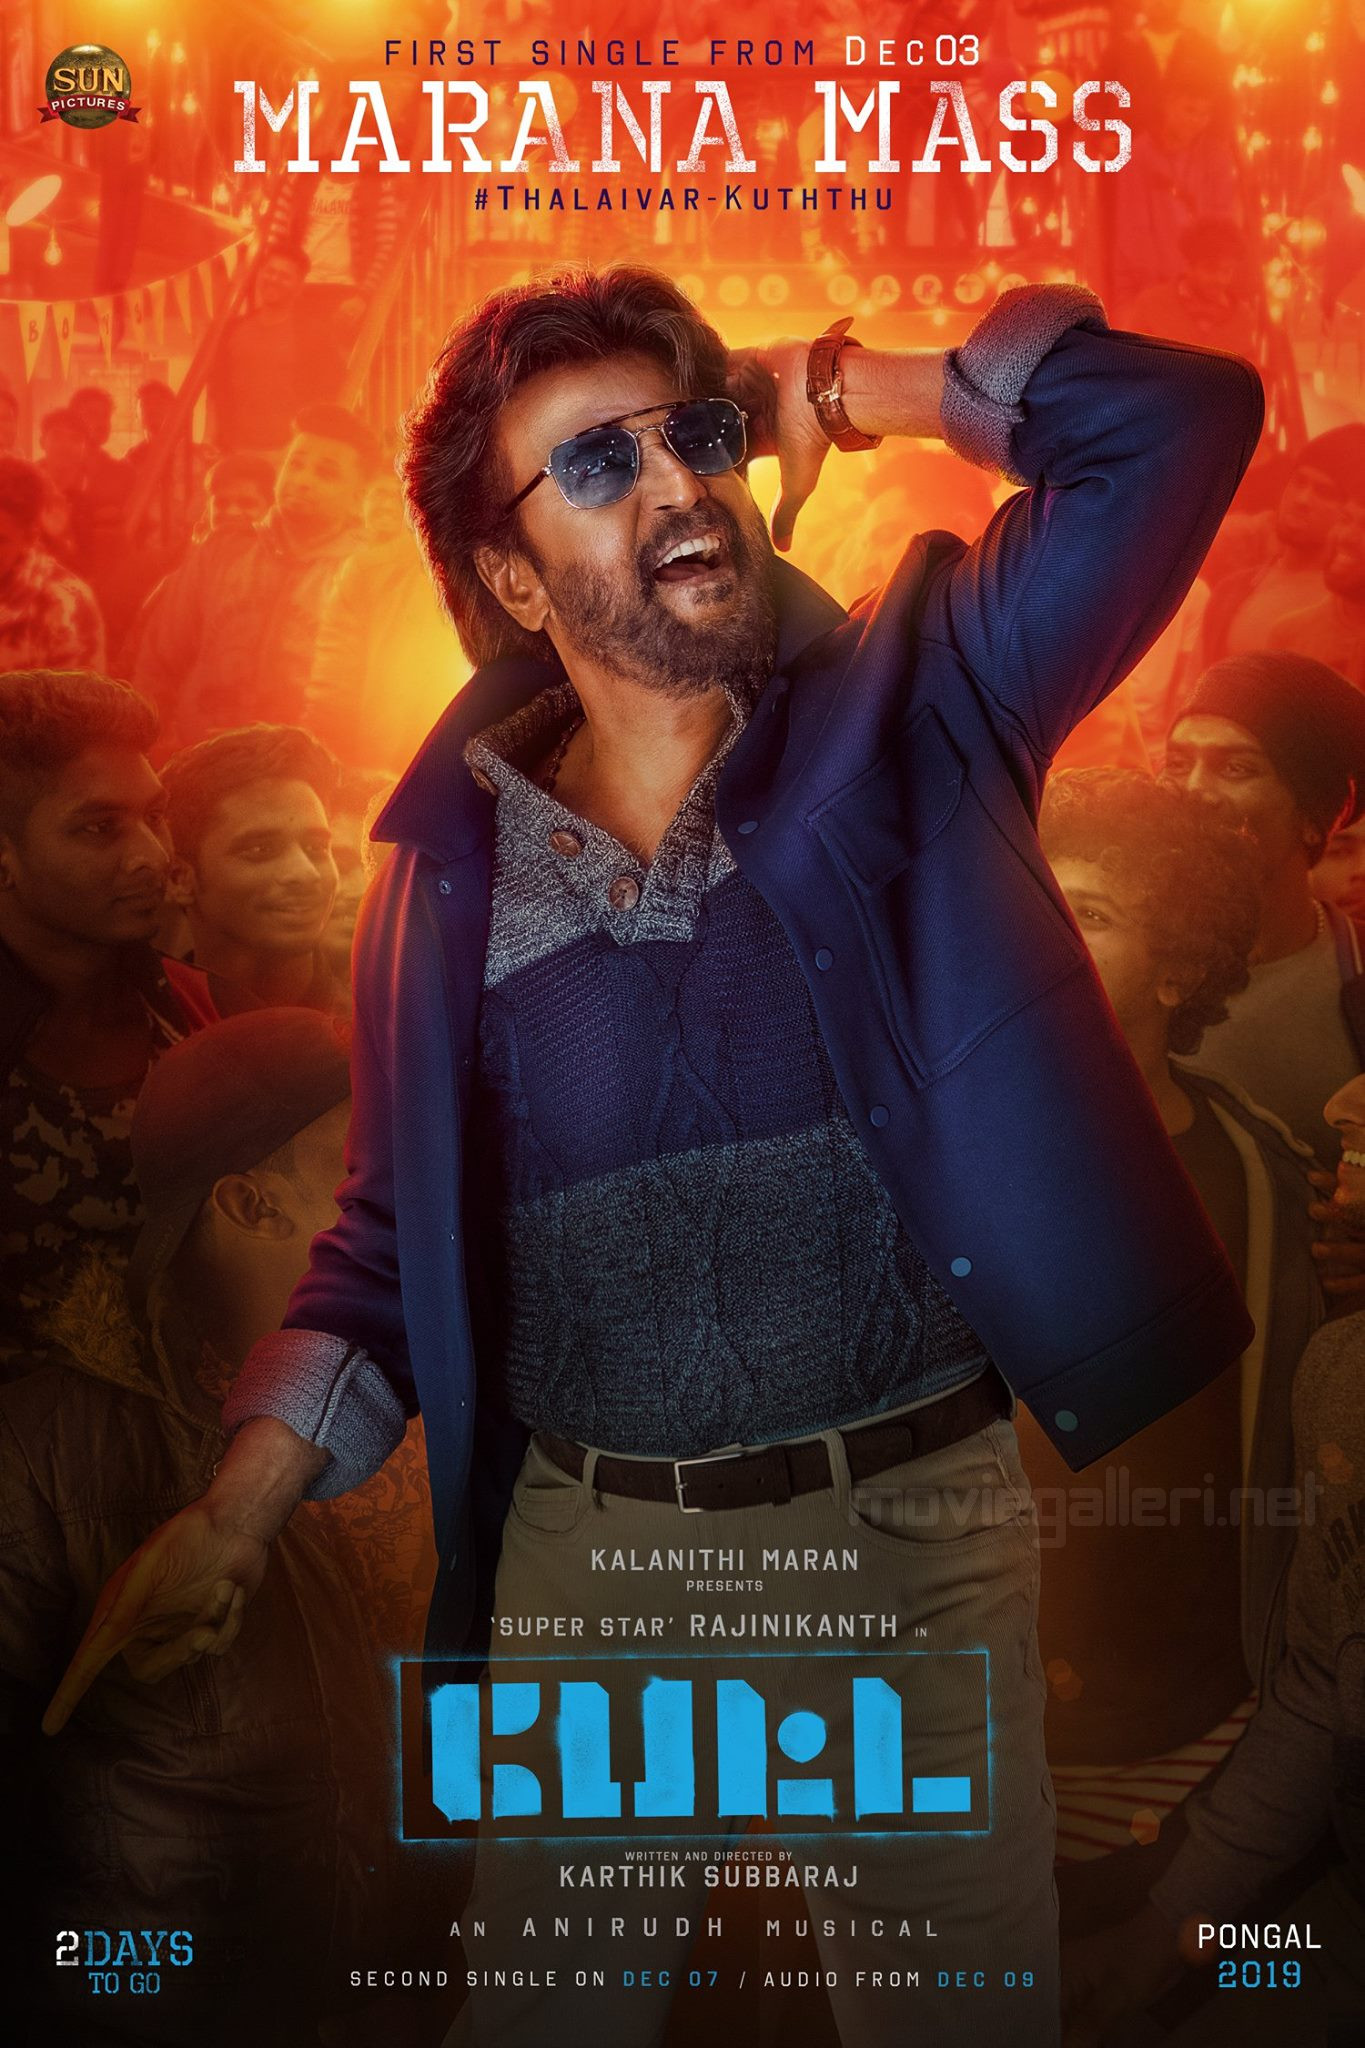 Rajinikanth Petta First Single Marana Mass Thalaivar Kuththu song in 2 days